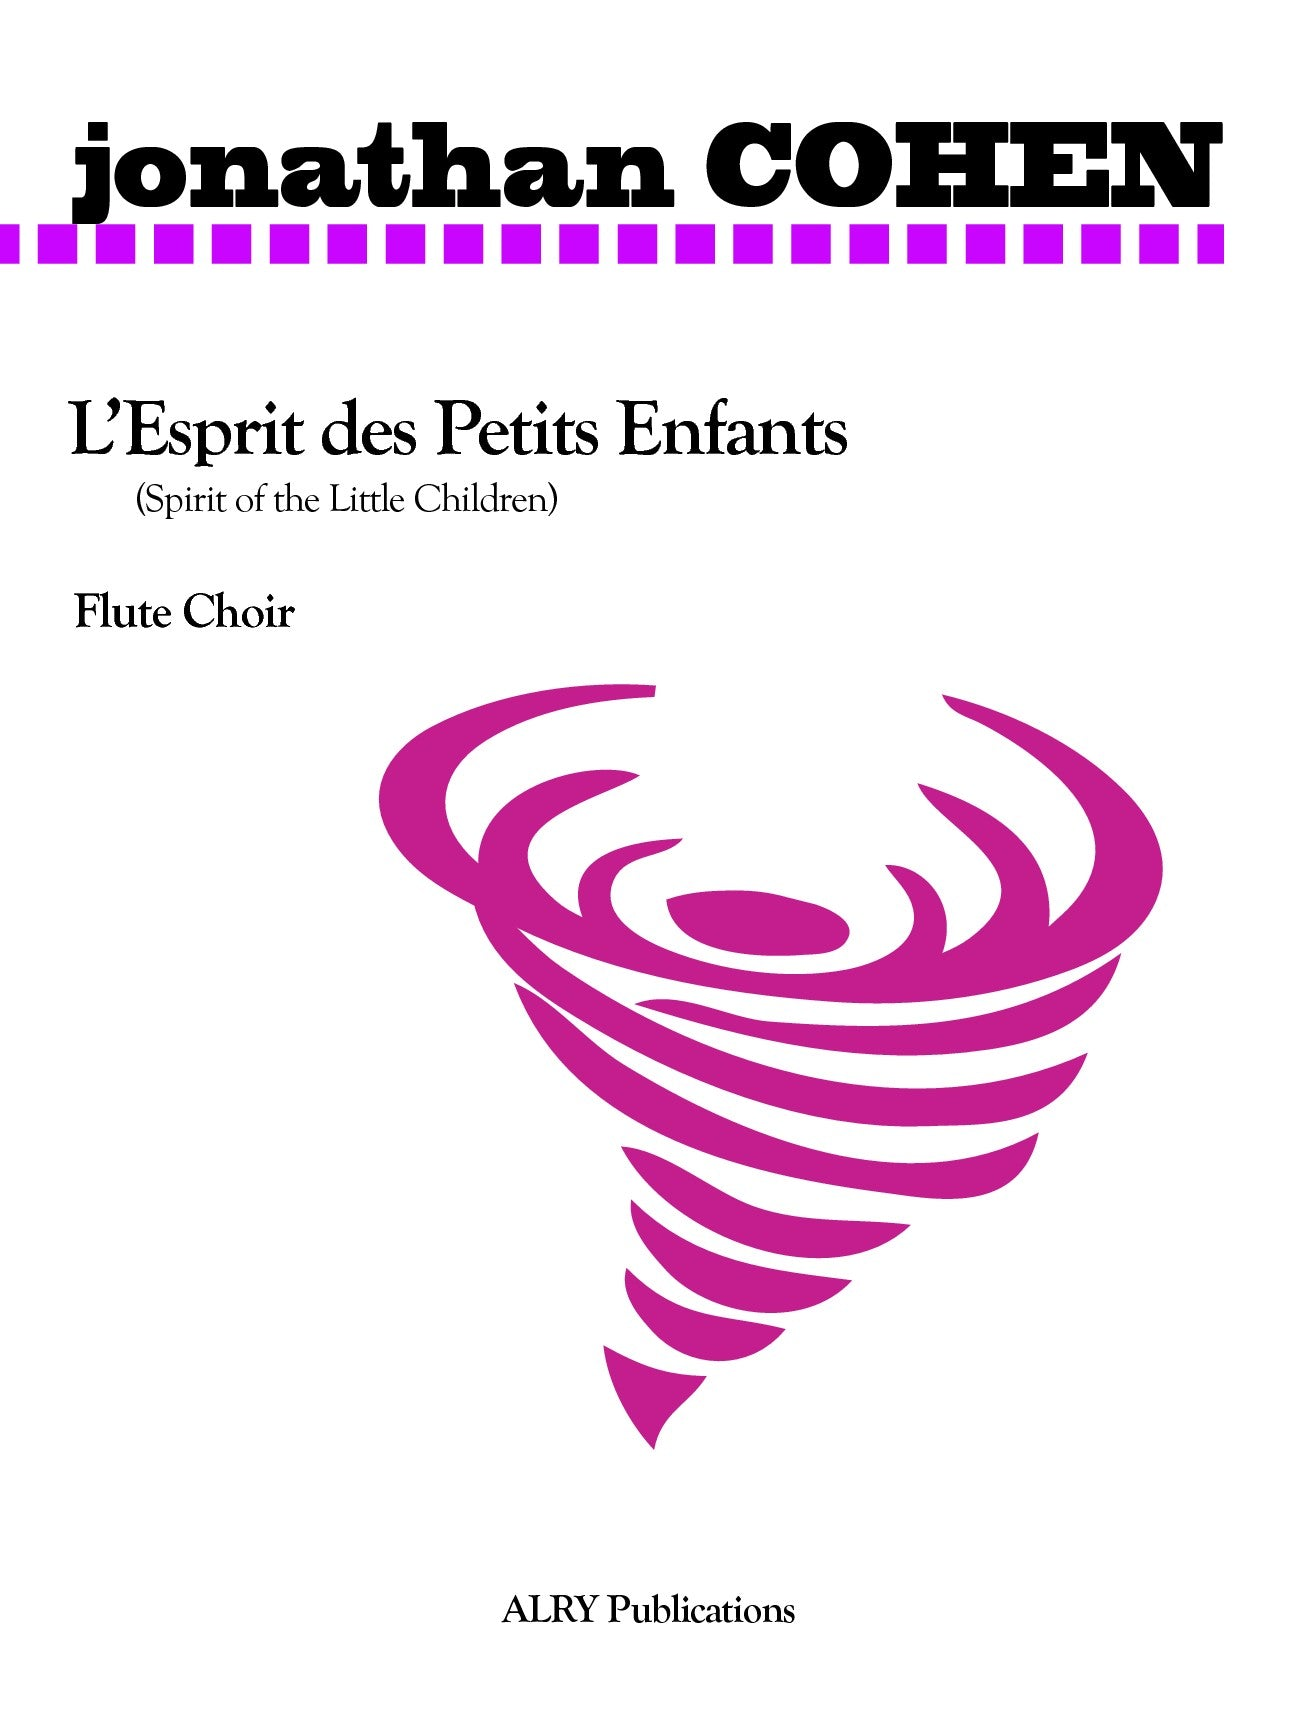 Cohen, J :: L'Esprit des Petits Enfants [Spirit of the Little Children]